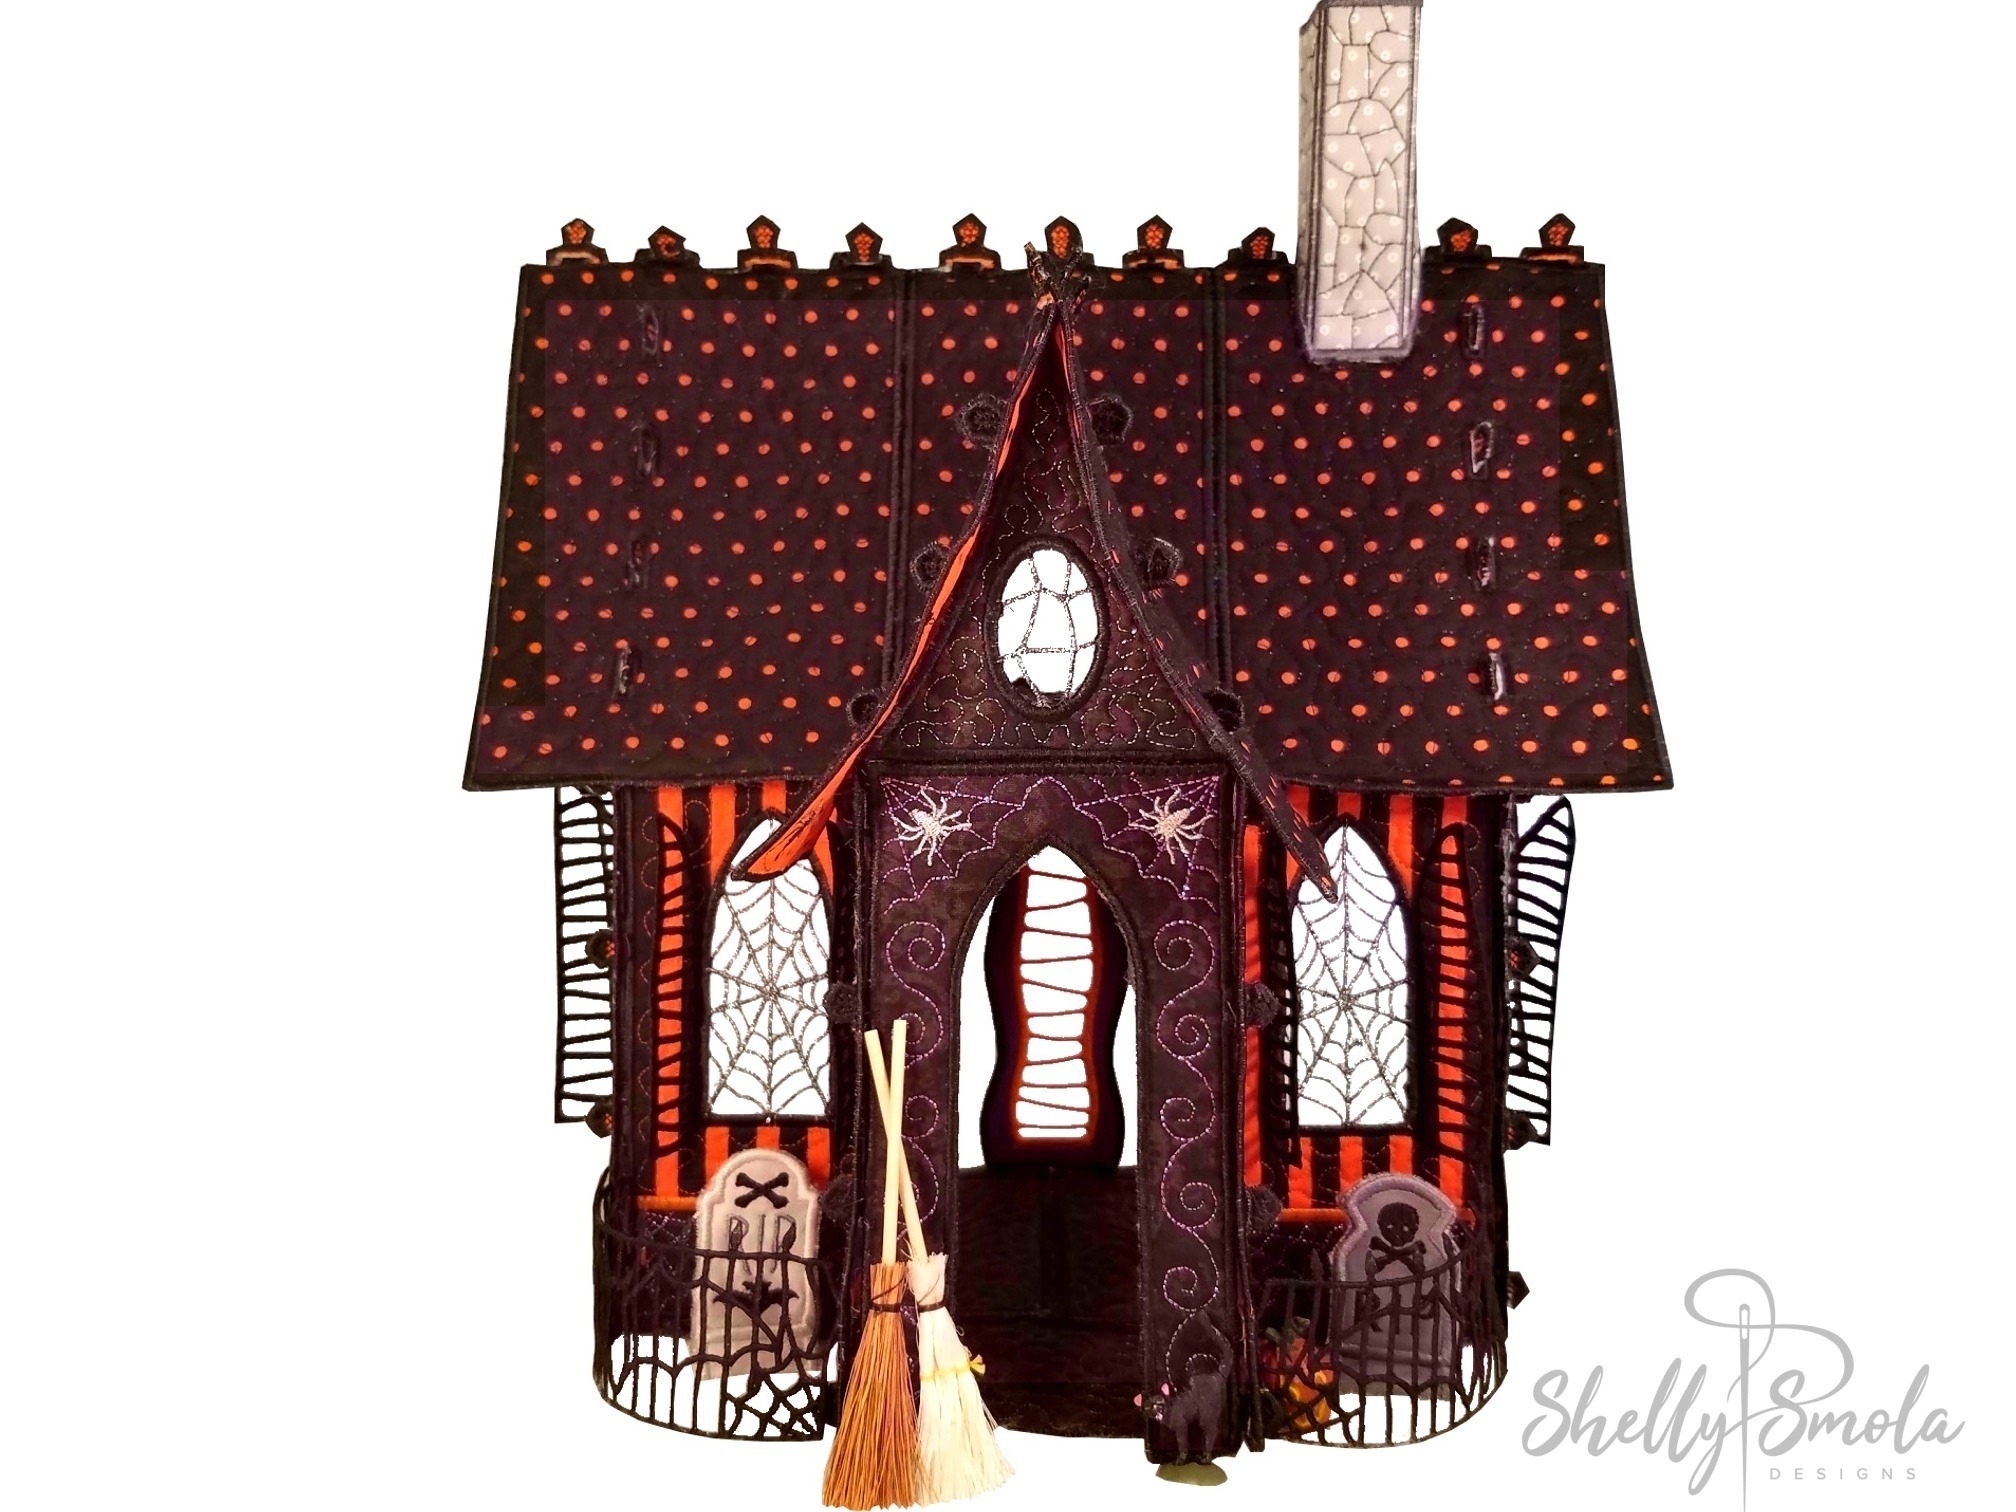 Creepy Cottage by Shelly Smola Designs